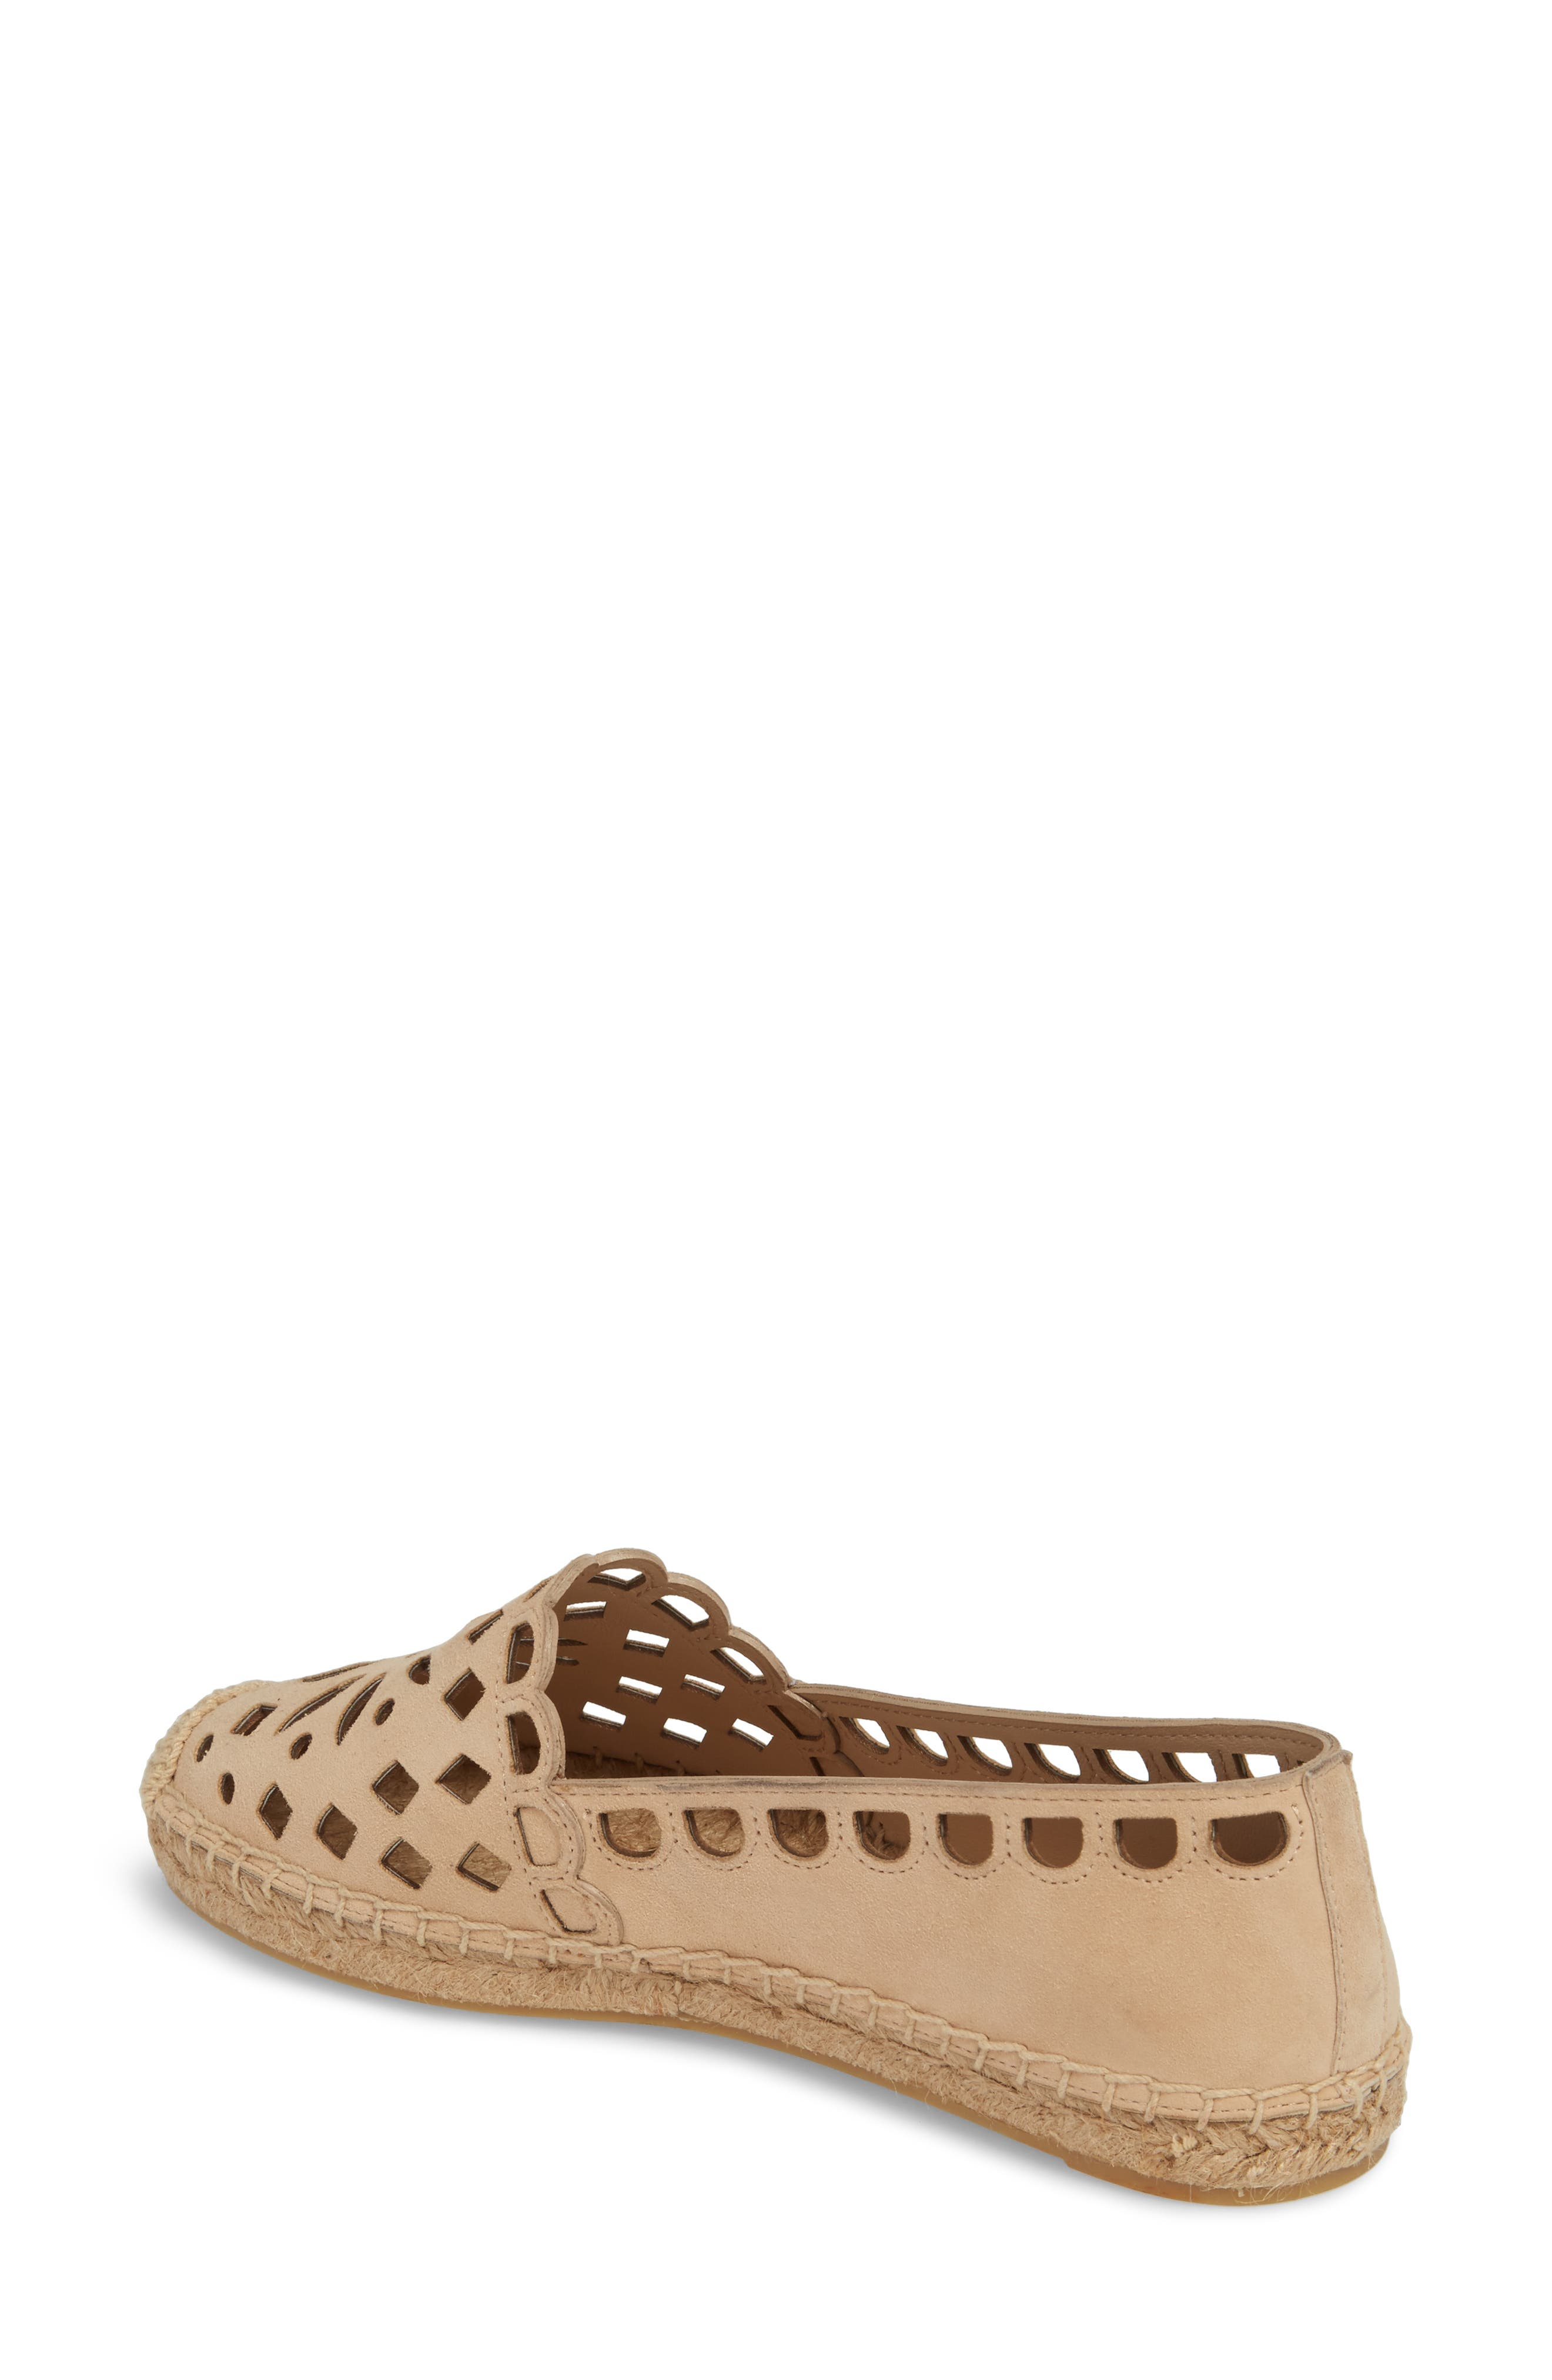 May Perforated Espadrille Flat,                             Alternate thumbnail 2, color,                             Desert Blush